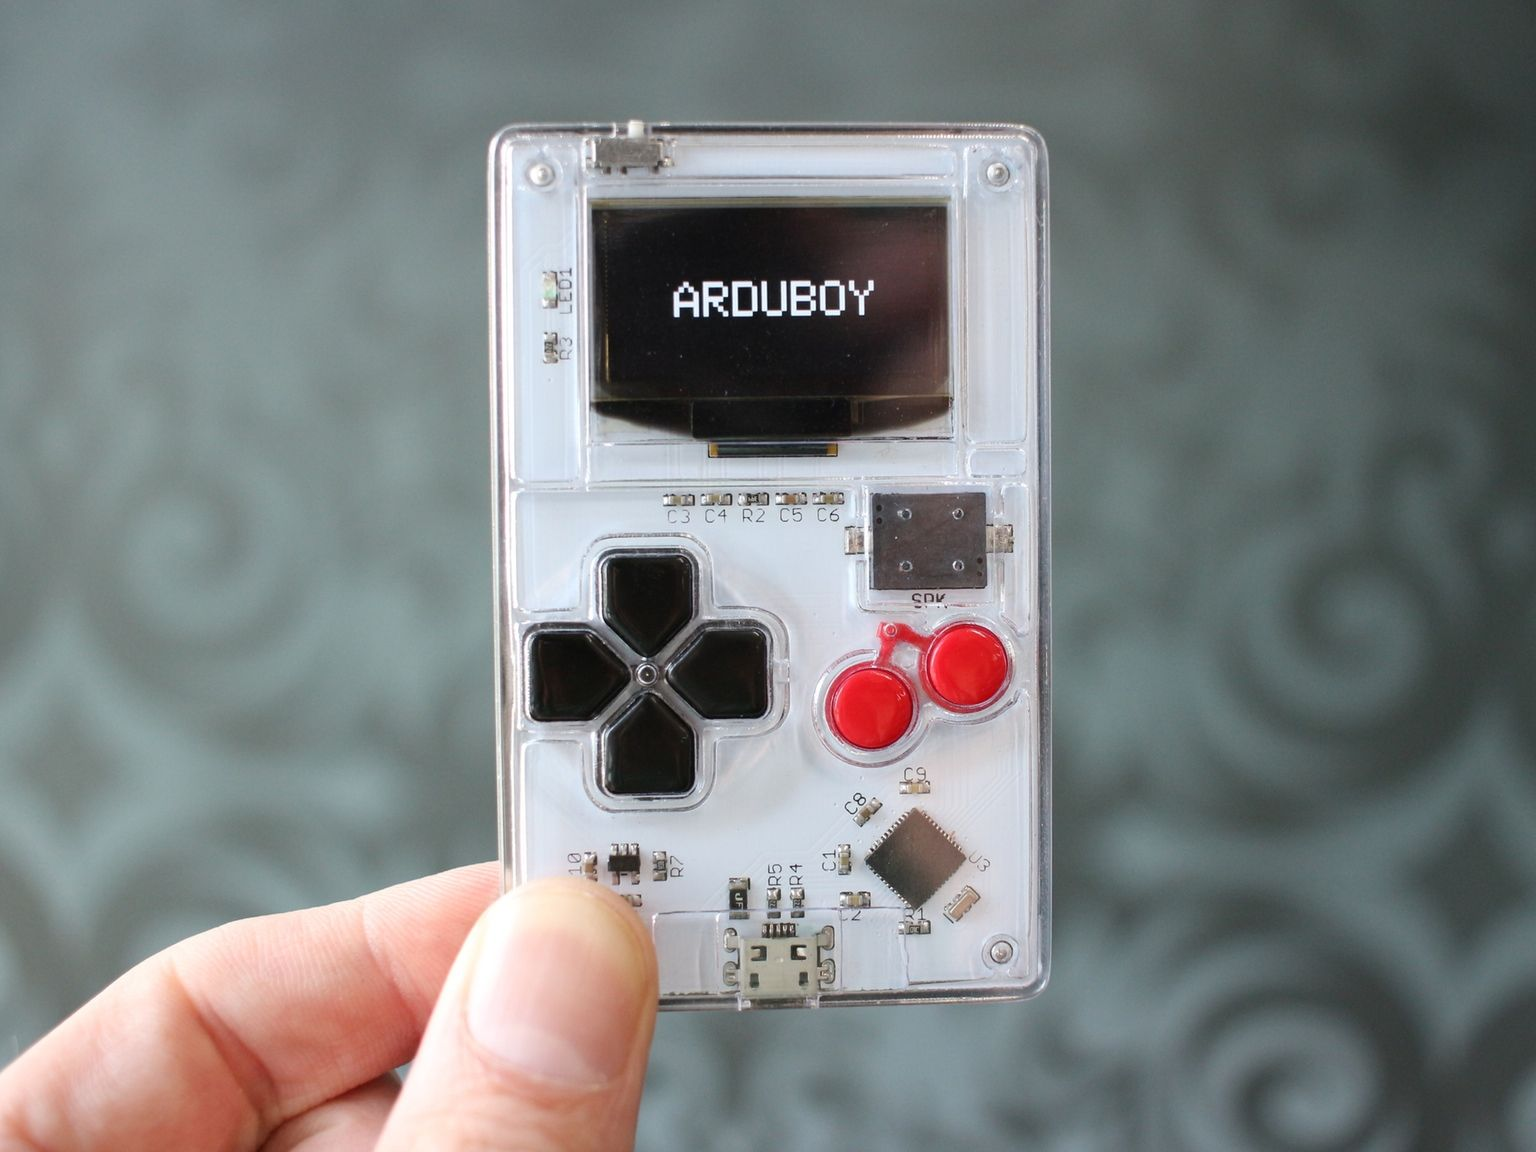 Arduboy The Game System The Size Of A Credit Card The Easiest Way To Play Make And Share 8 Bit Games Powered By Arduino Gameboy Make Your Own Game Arduino